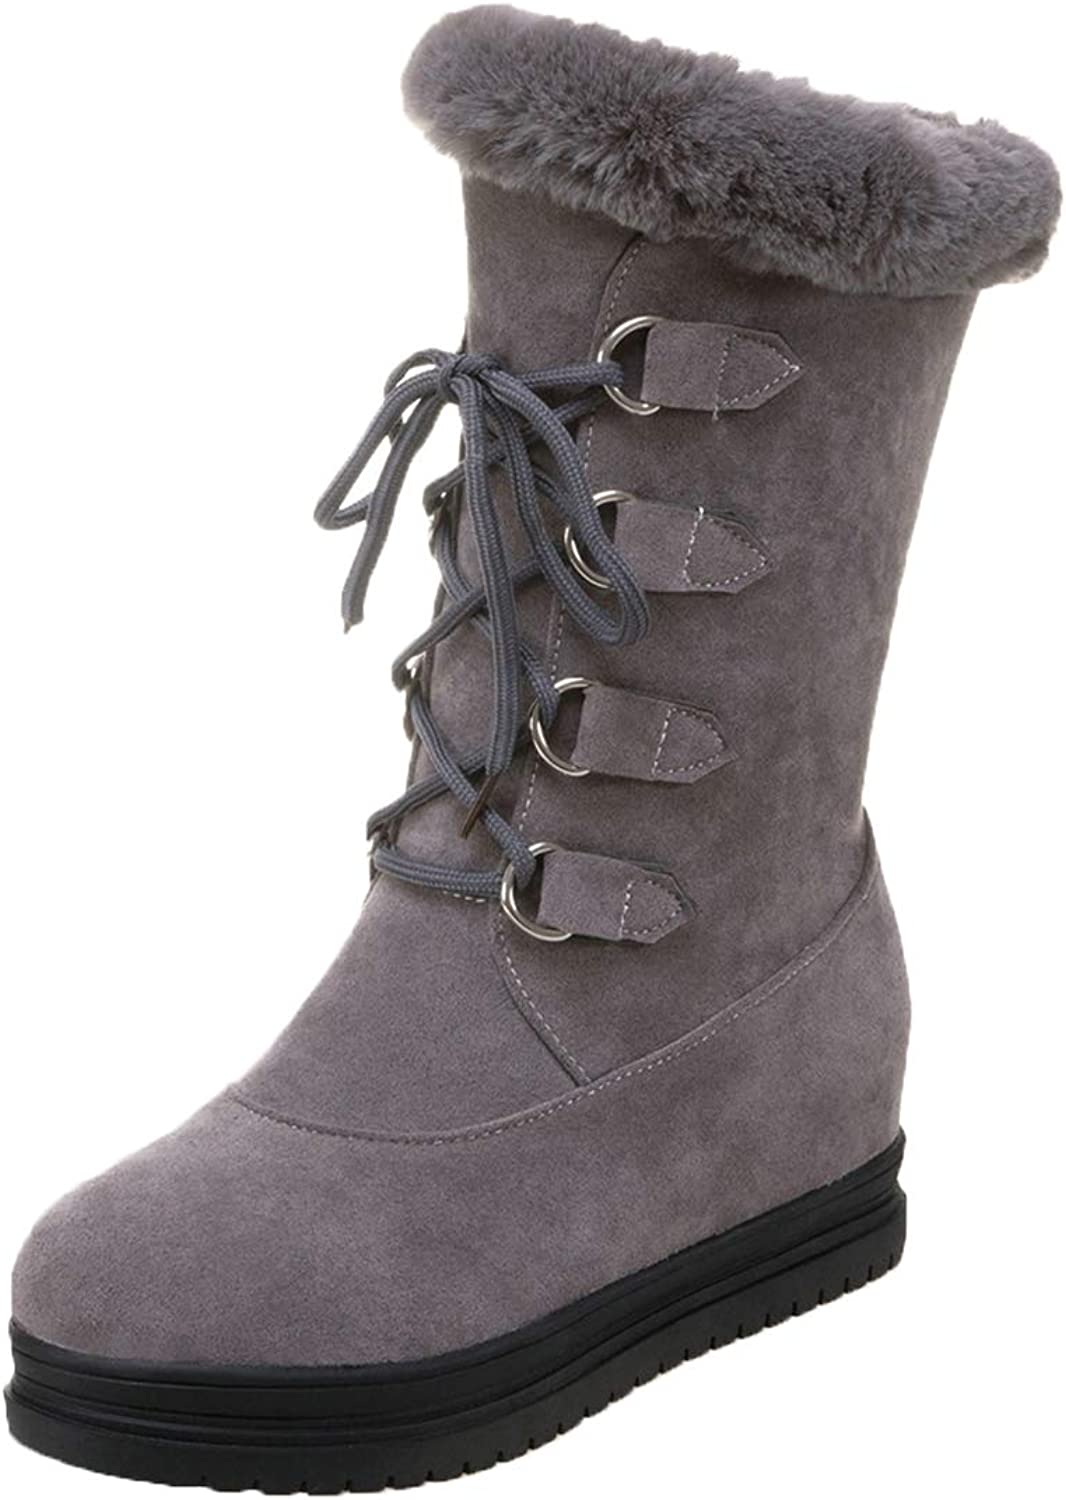 Vitalo Womens Lace up Mid Calf Flat Fur Warm Winter Outdoor Snow Boots